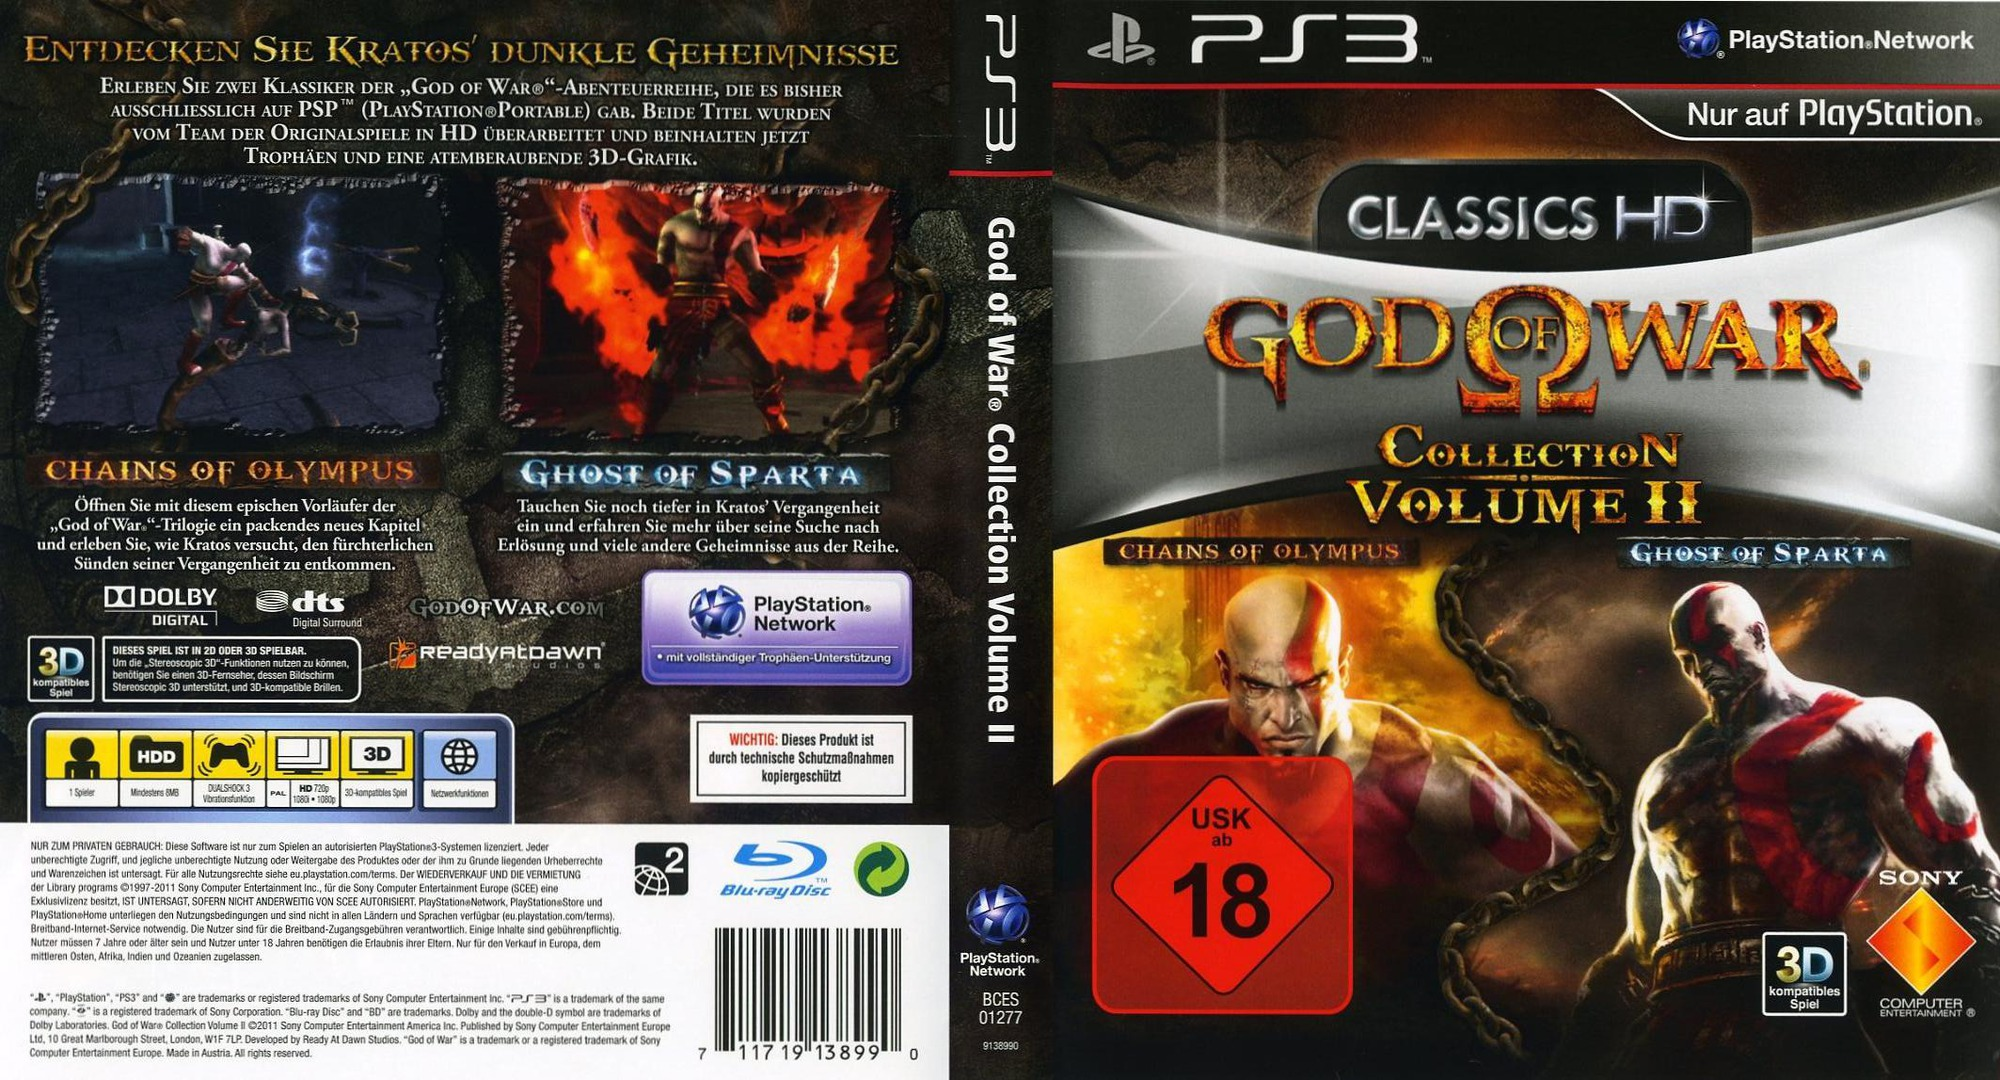 Bces01277 God Of War Collection Volume Ii